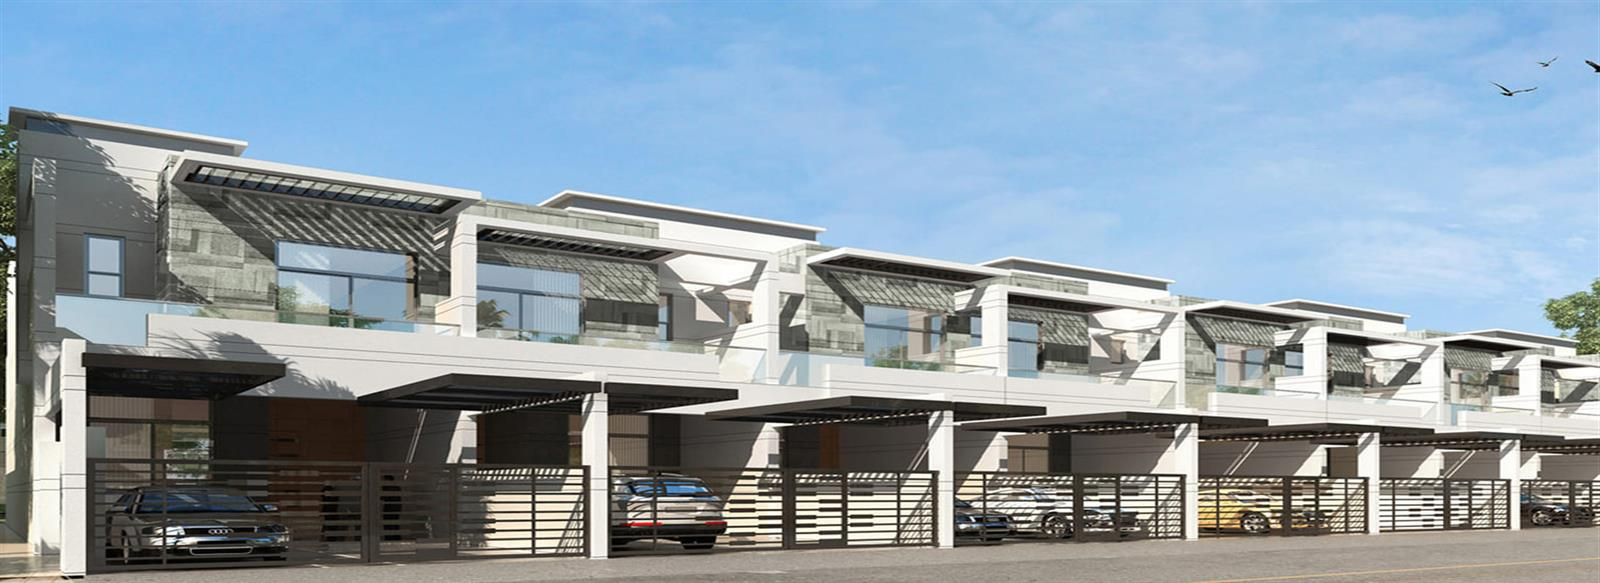 LUXURY 3 BEDROOM TOWNHOUSES WITH MAID ROOM